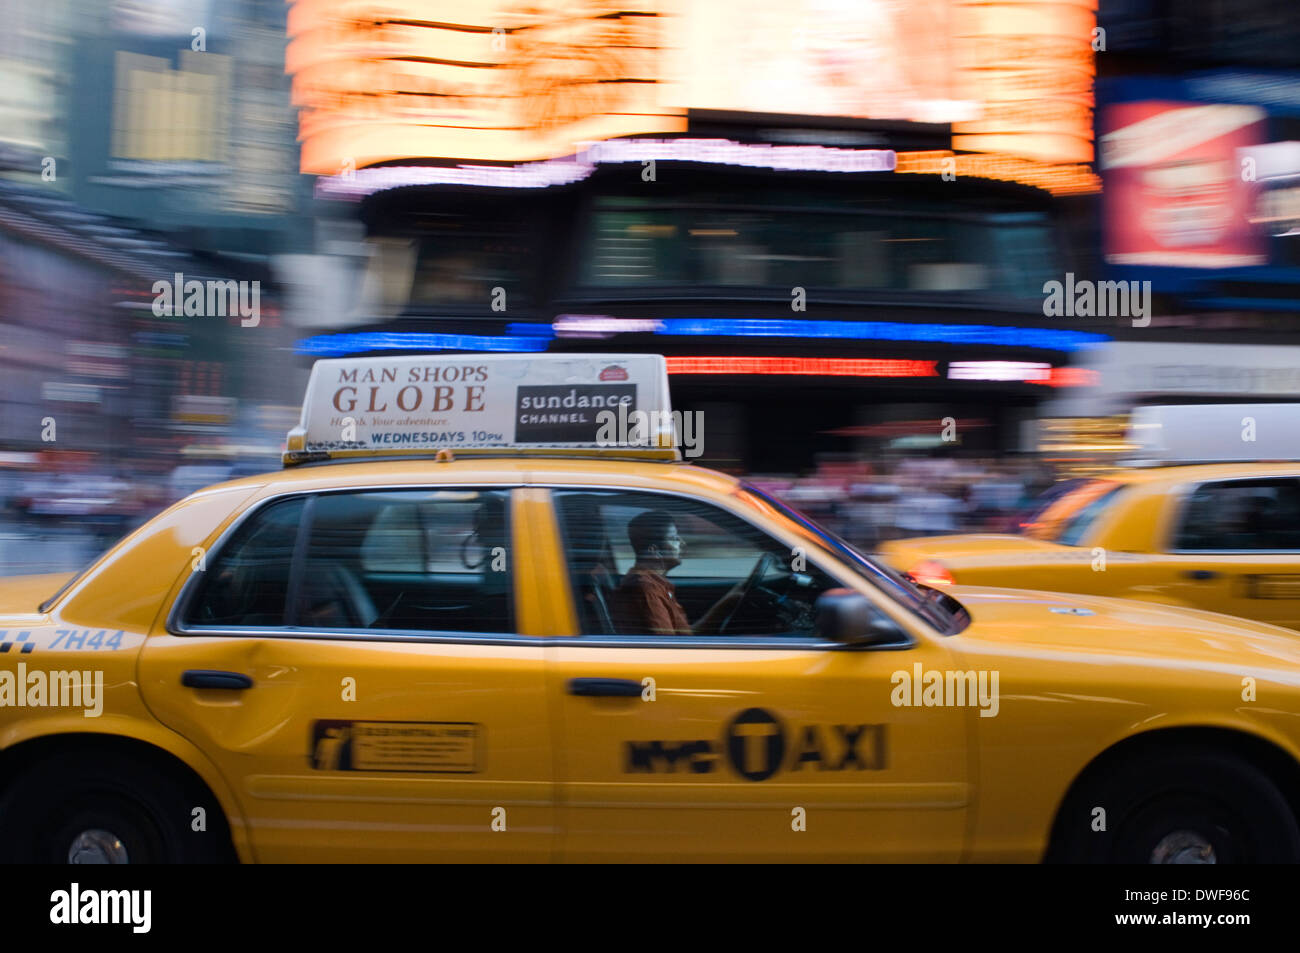 A taxi driver walking around Times Square, but this traditional postcard invaded Times Square yellow taxis will go down - Stock Image